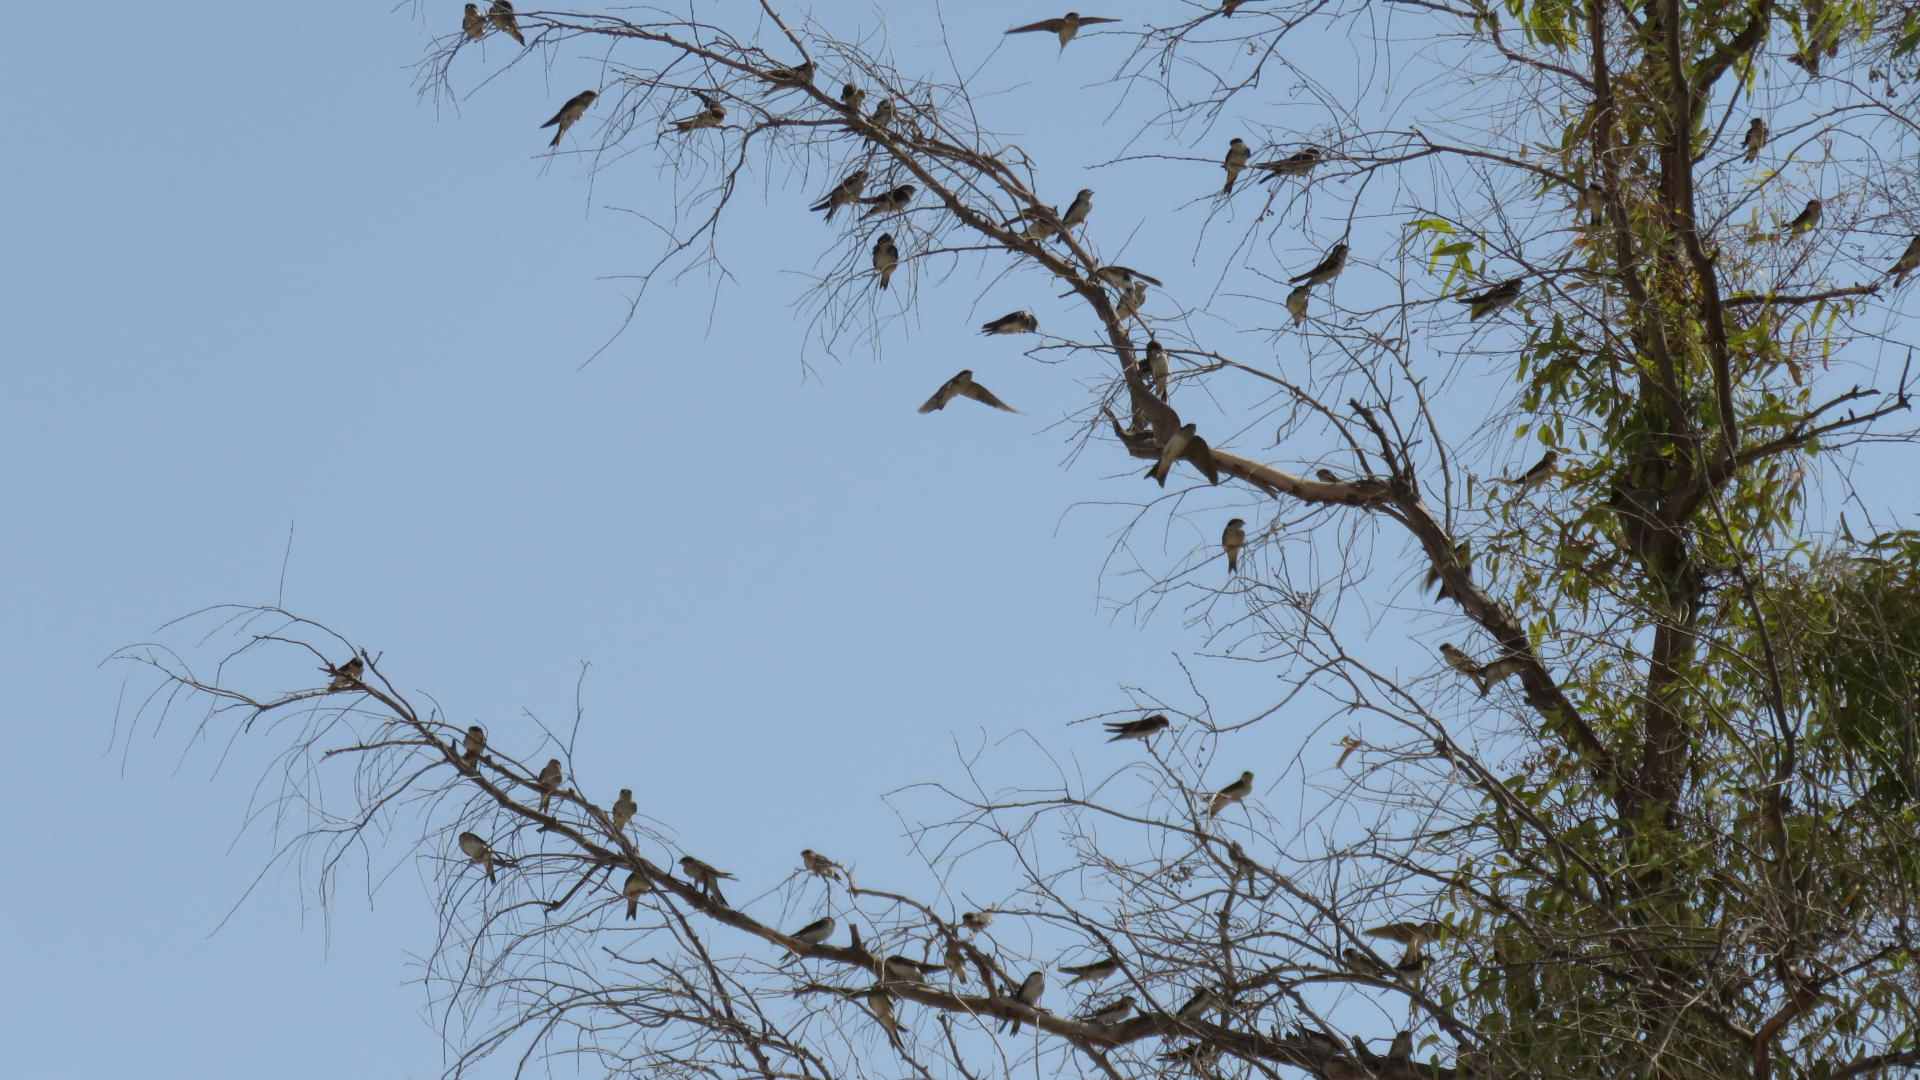 House Martins gathering to migrate